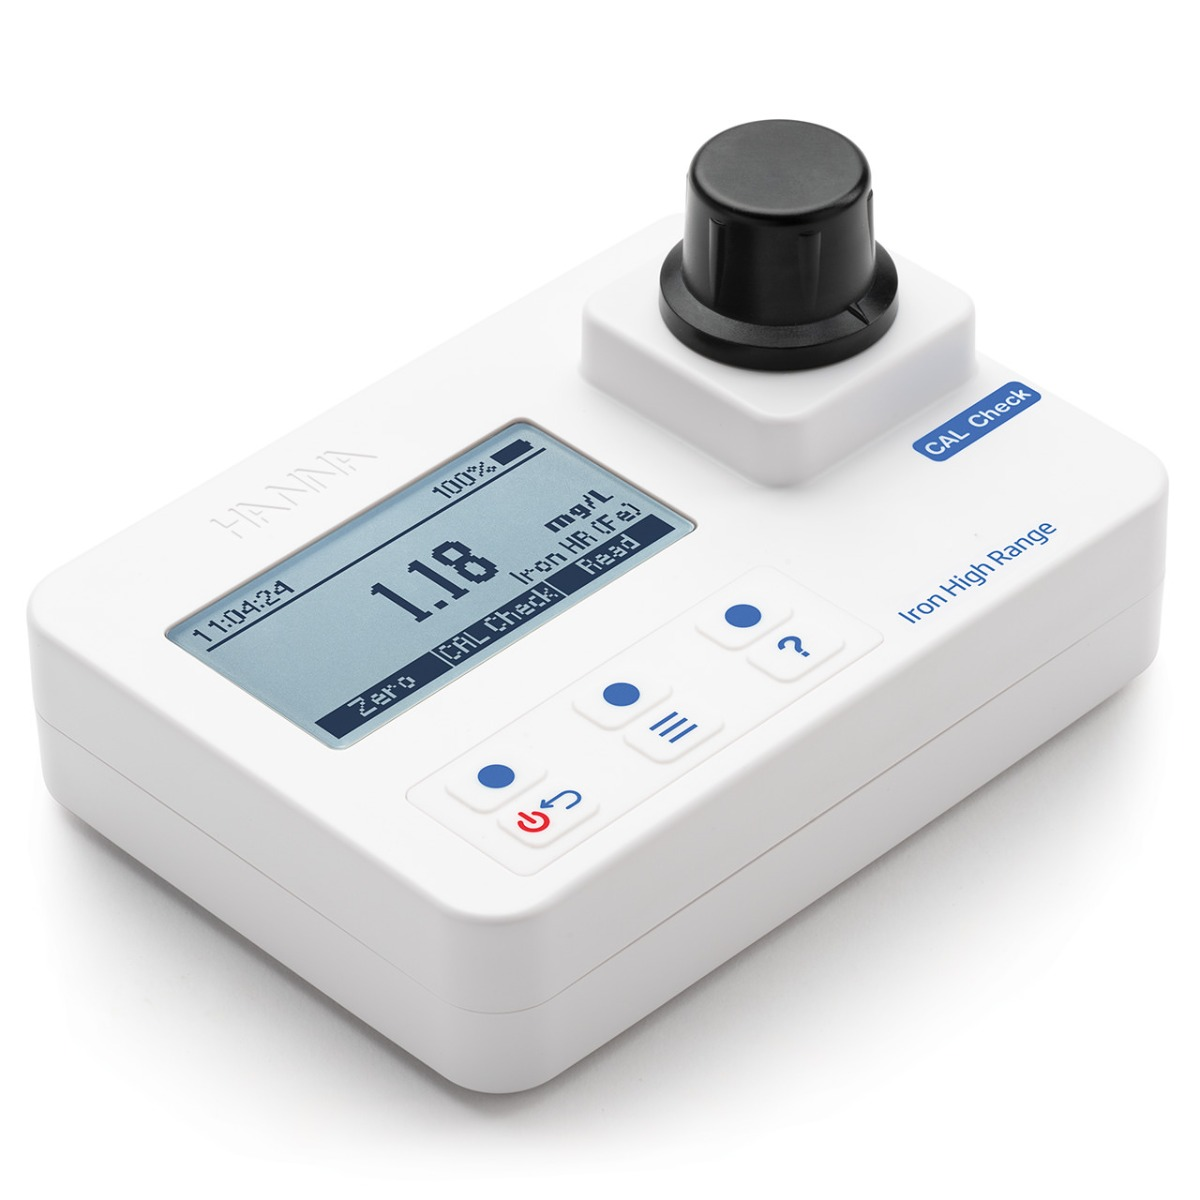 Iron High Range Portable Photometer with CAL Check - HI97721